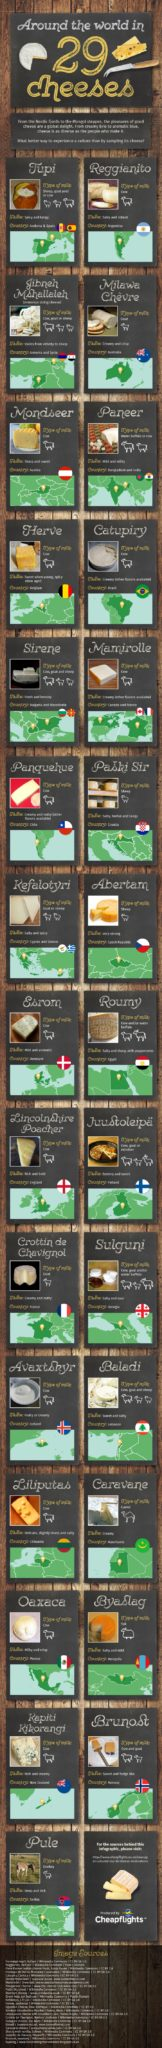 Around-the-world-in-29-cheeses-infographic-UK